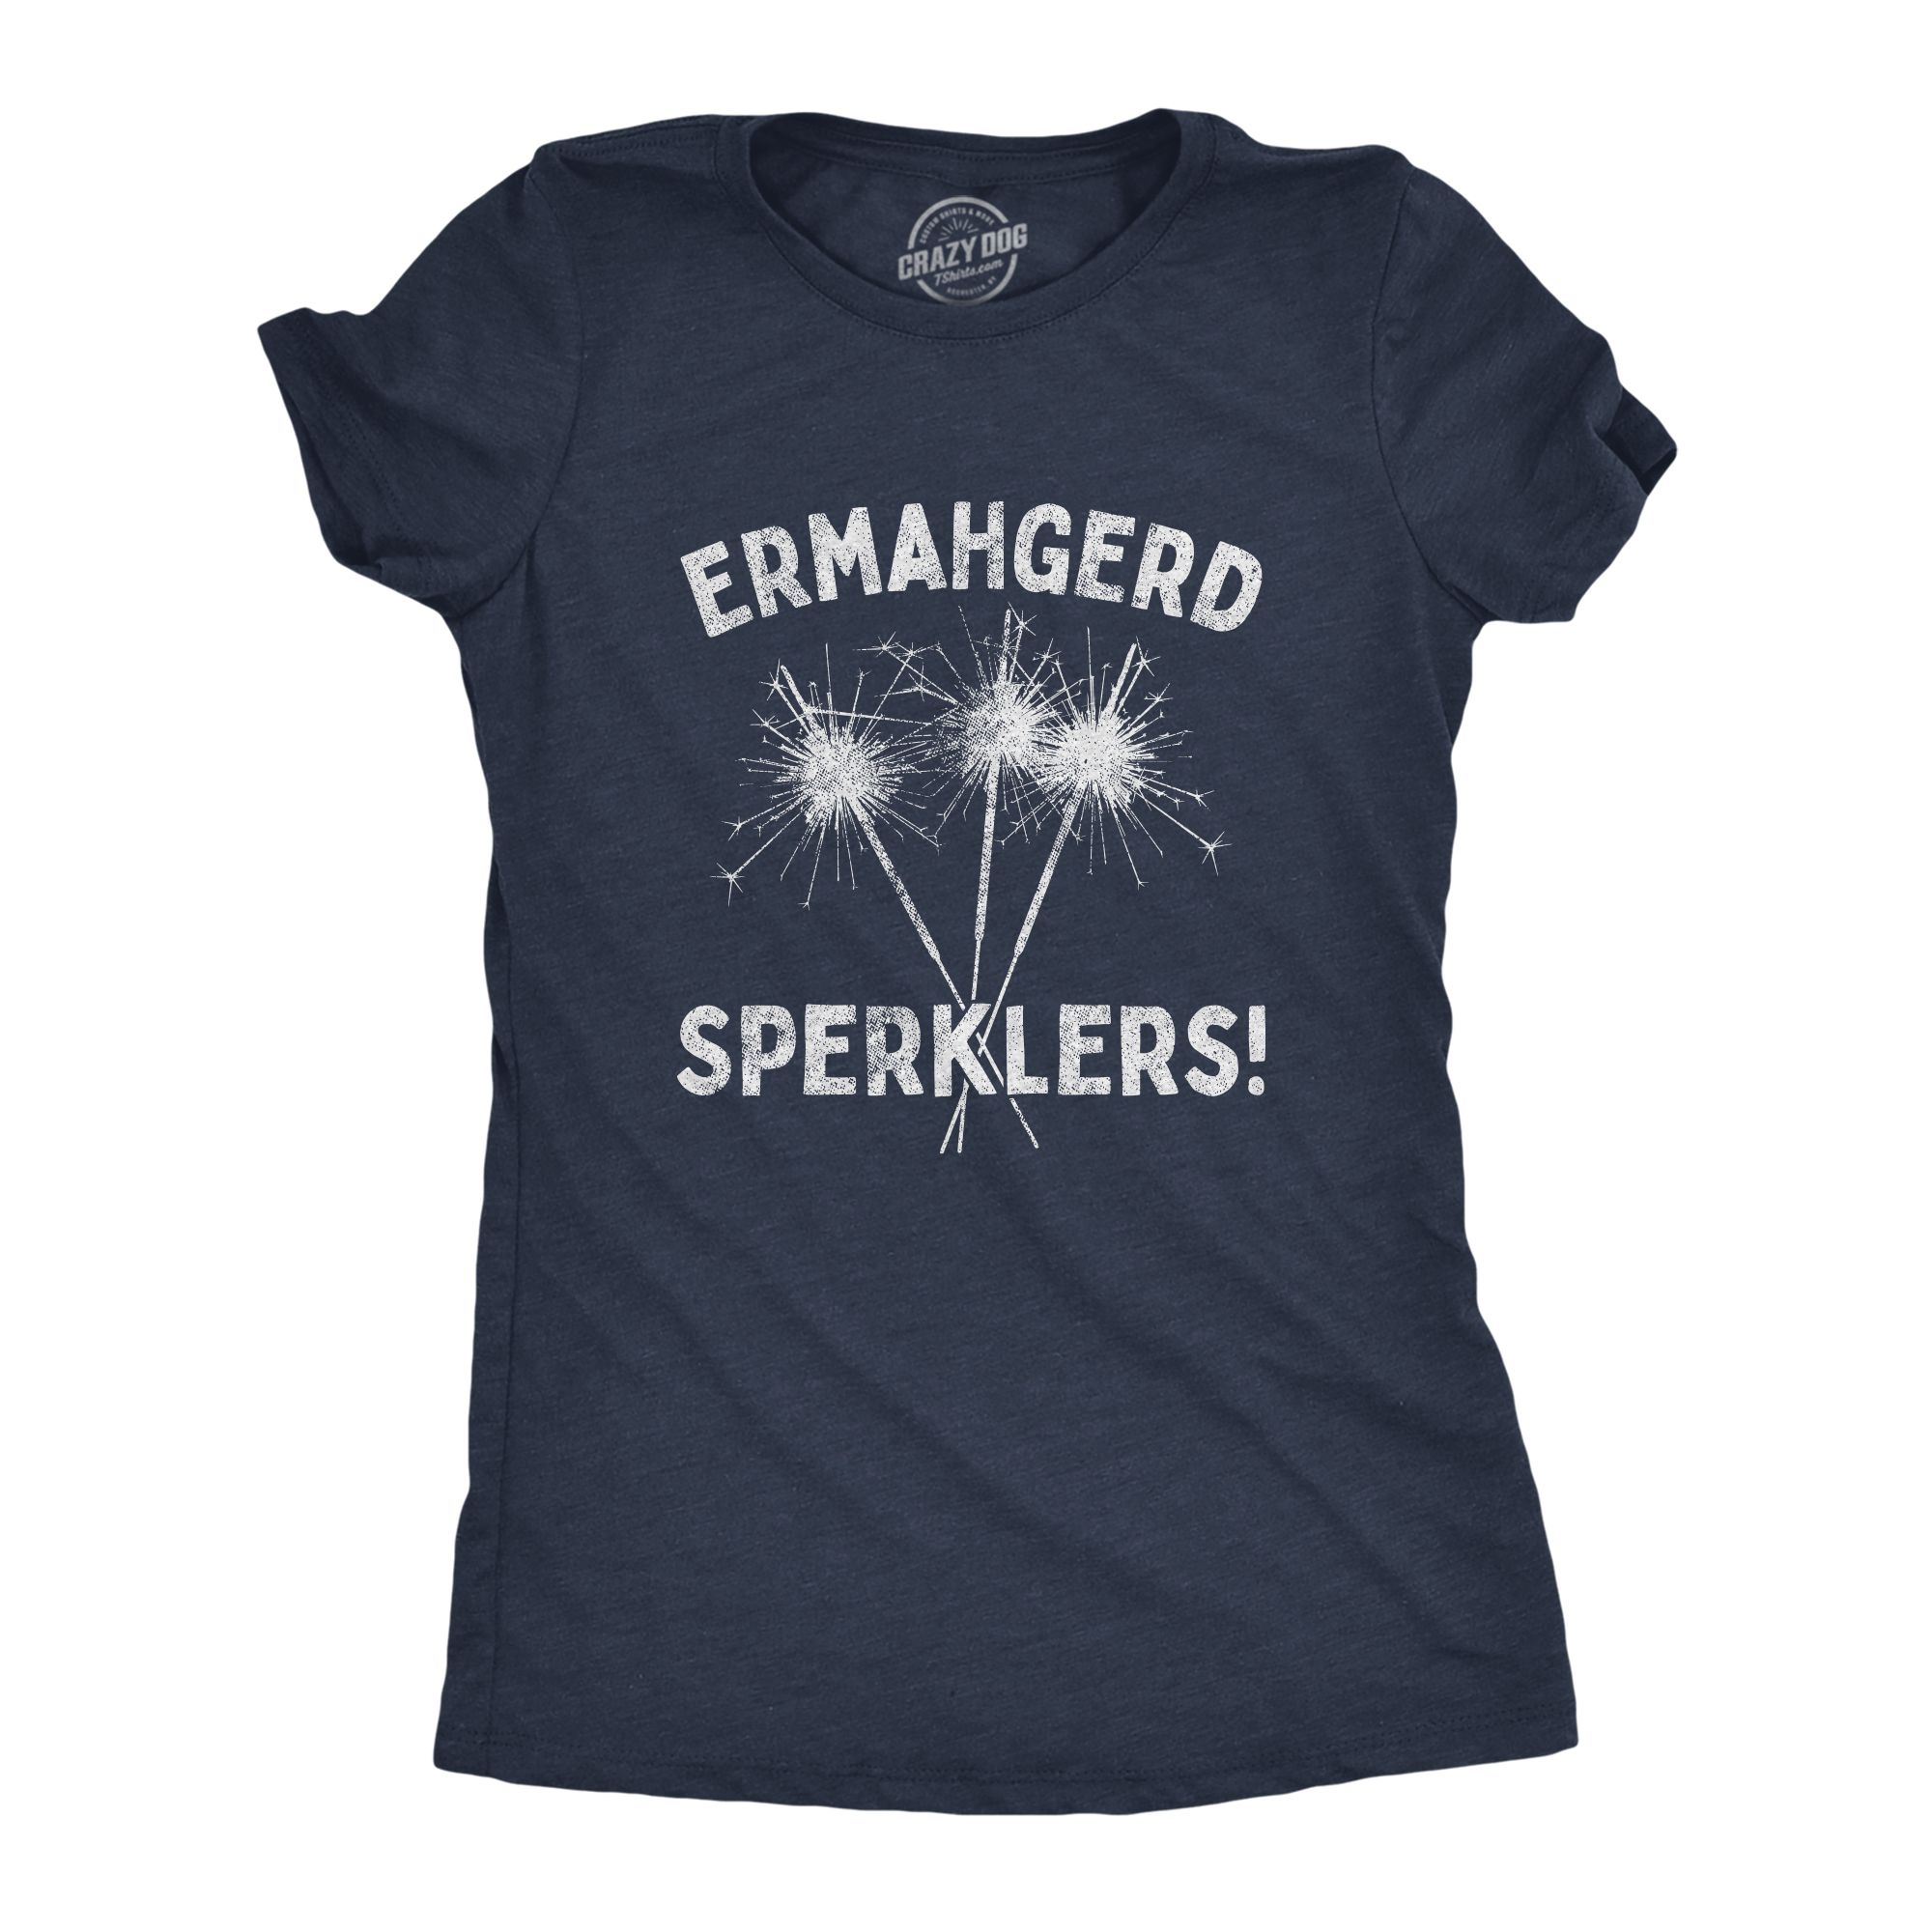 Womens Ermahgerd Sperklers Tshirt Funny 4th of July Fireworks Sparklers Graphic Novelty Tee (Heather Navy) - L